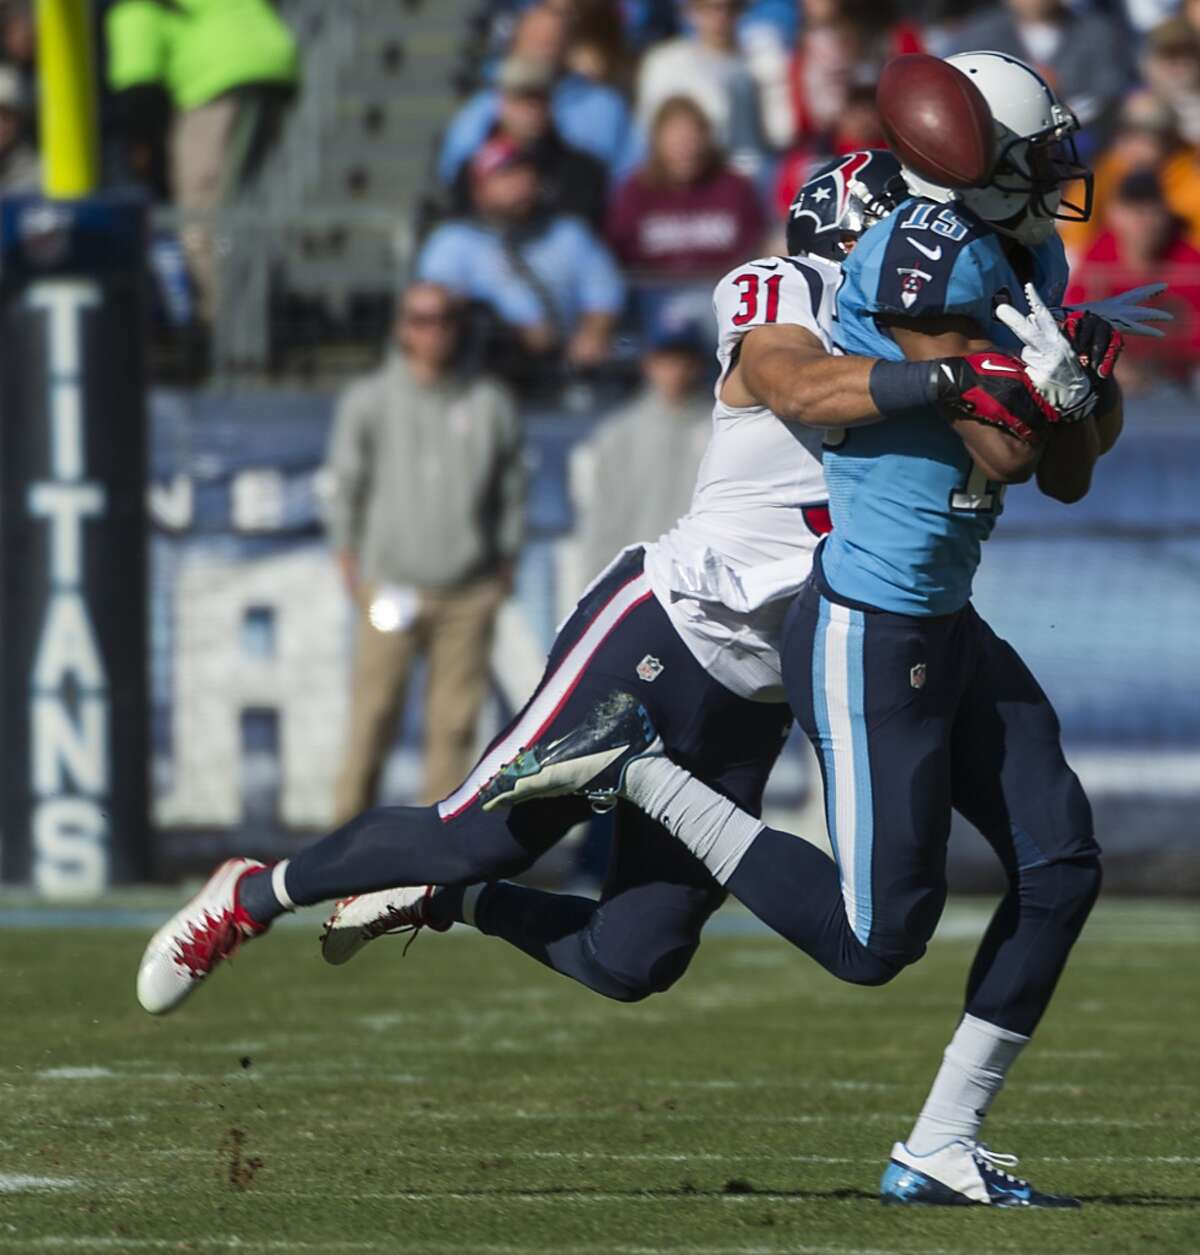 Texans free safety Shiloh Keo (31) breaks up a pass intended for Titans wide receiver Justin Hunter (15).